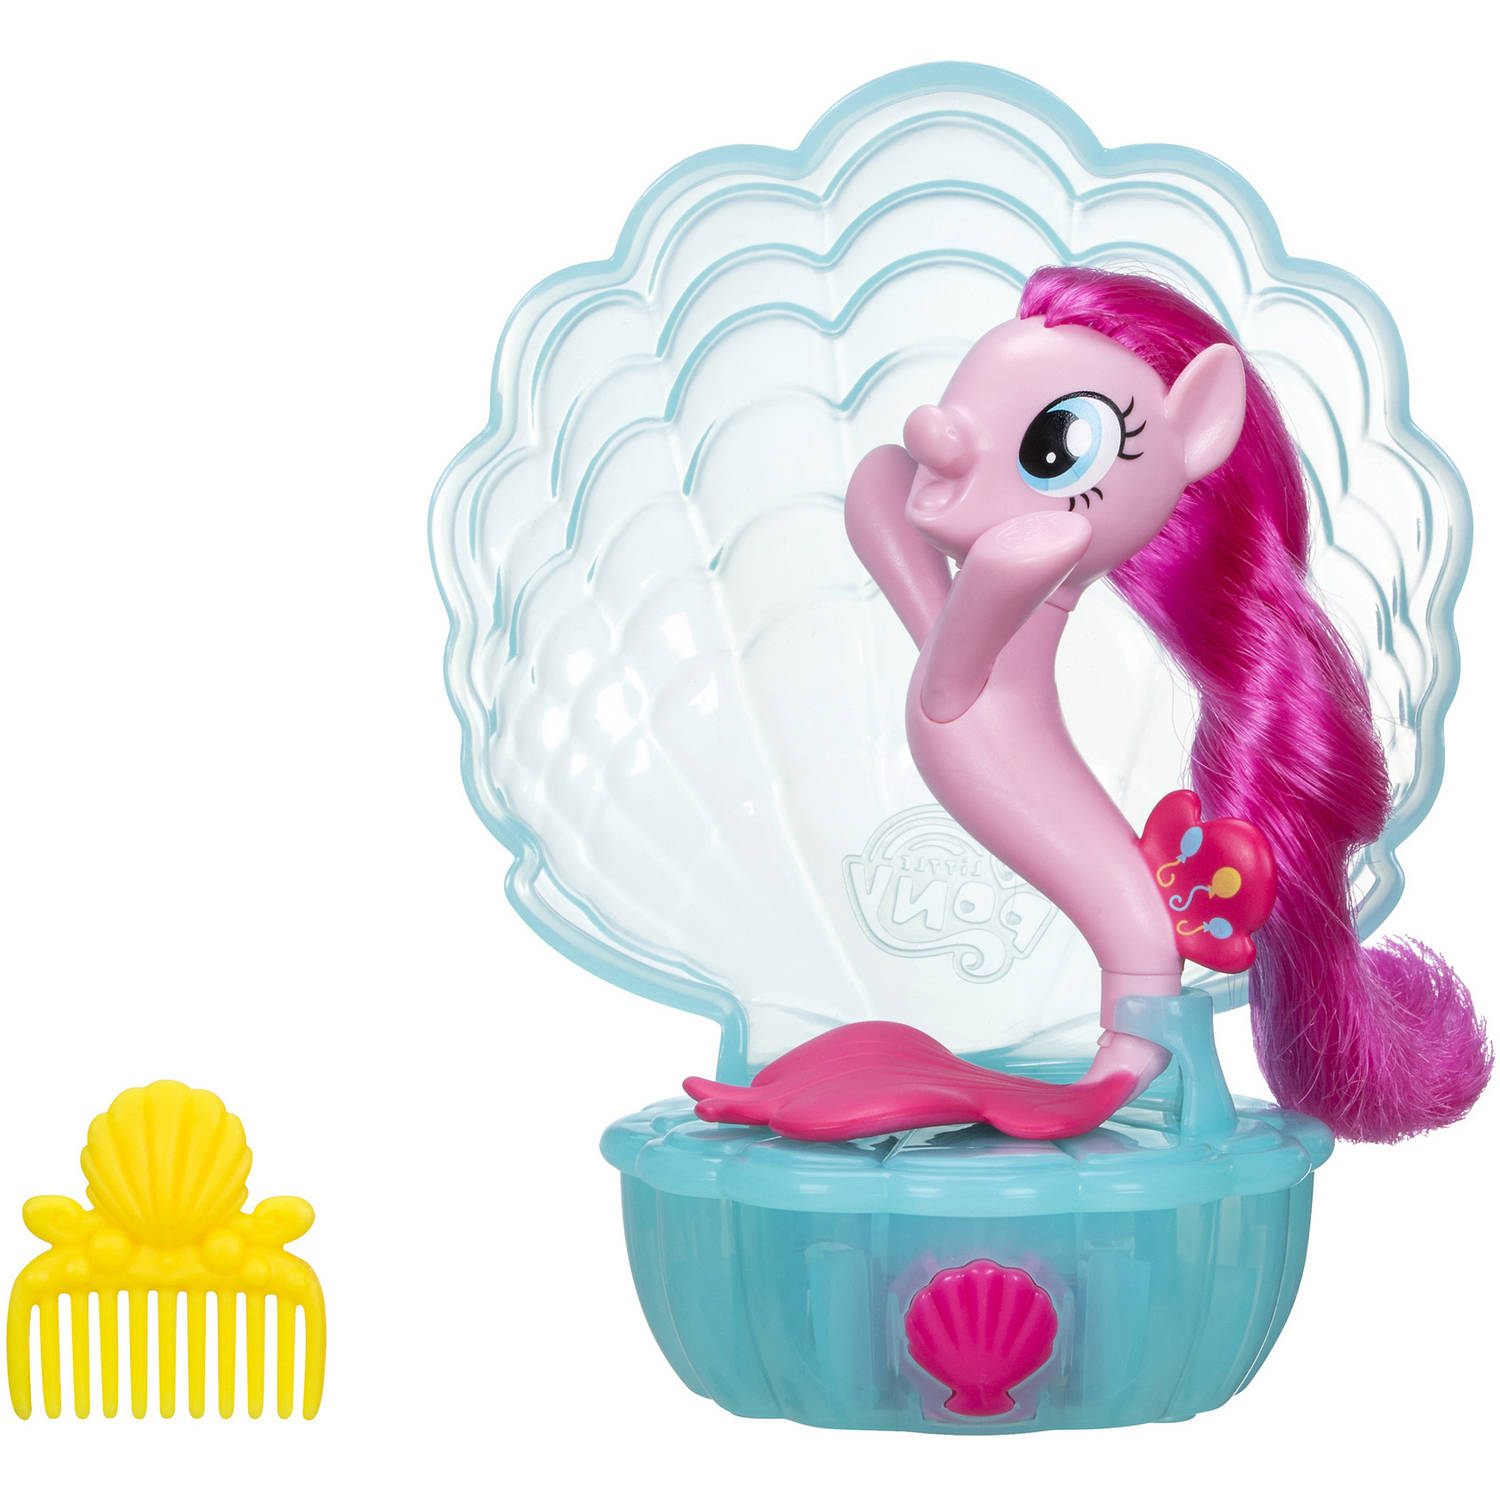 My Little Pony: The Movie Pinkie Pie Sea Song by Hasbro